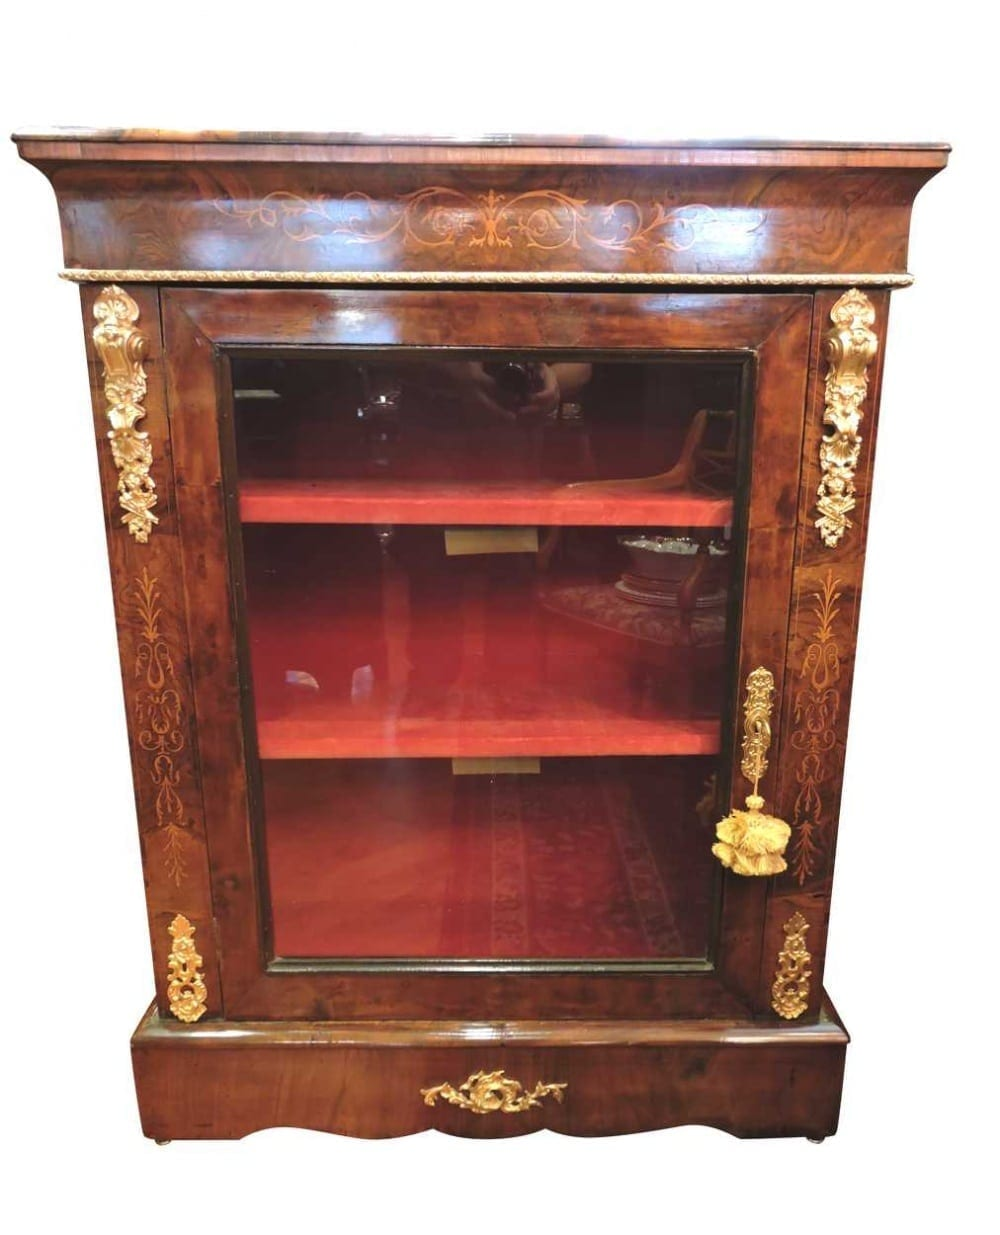 furniture - burledwalnutcabinet-02.jpg